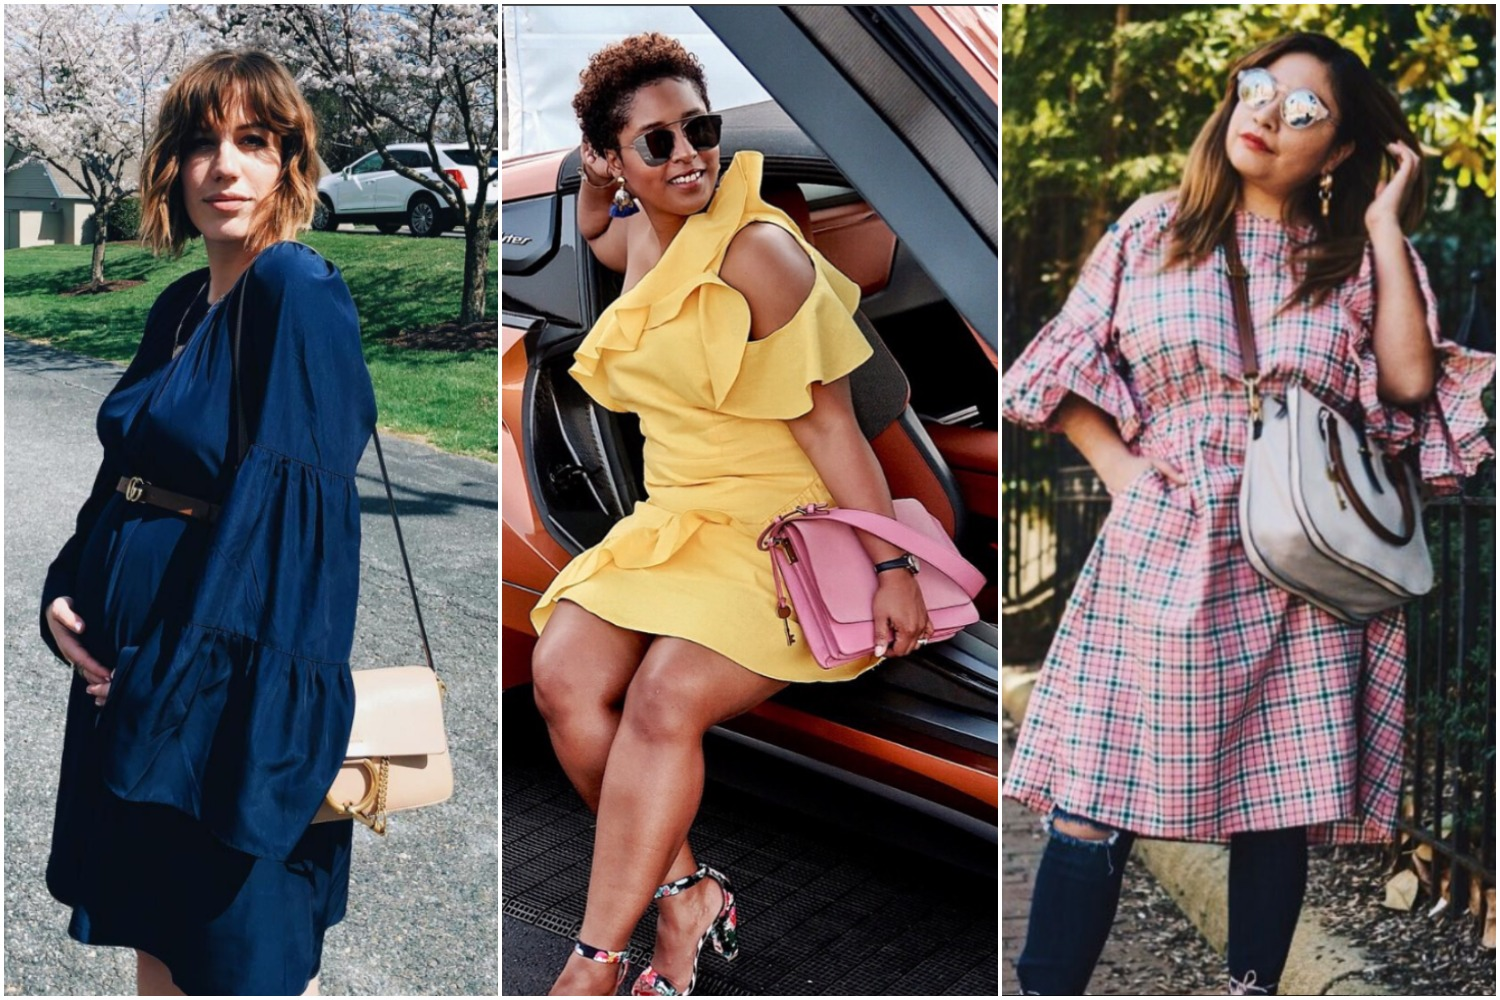 It would be an understatement to say that the weather has been all over the place this spring. Hopefully warmer days are ahead of us, but here are some looks we're looking forward to trying out. (Images: Courtesy Julien Garman, Jen Jean-Pierre and Carlis Sanchez){&amp;nbsp;}<p></p>